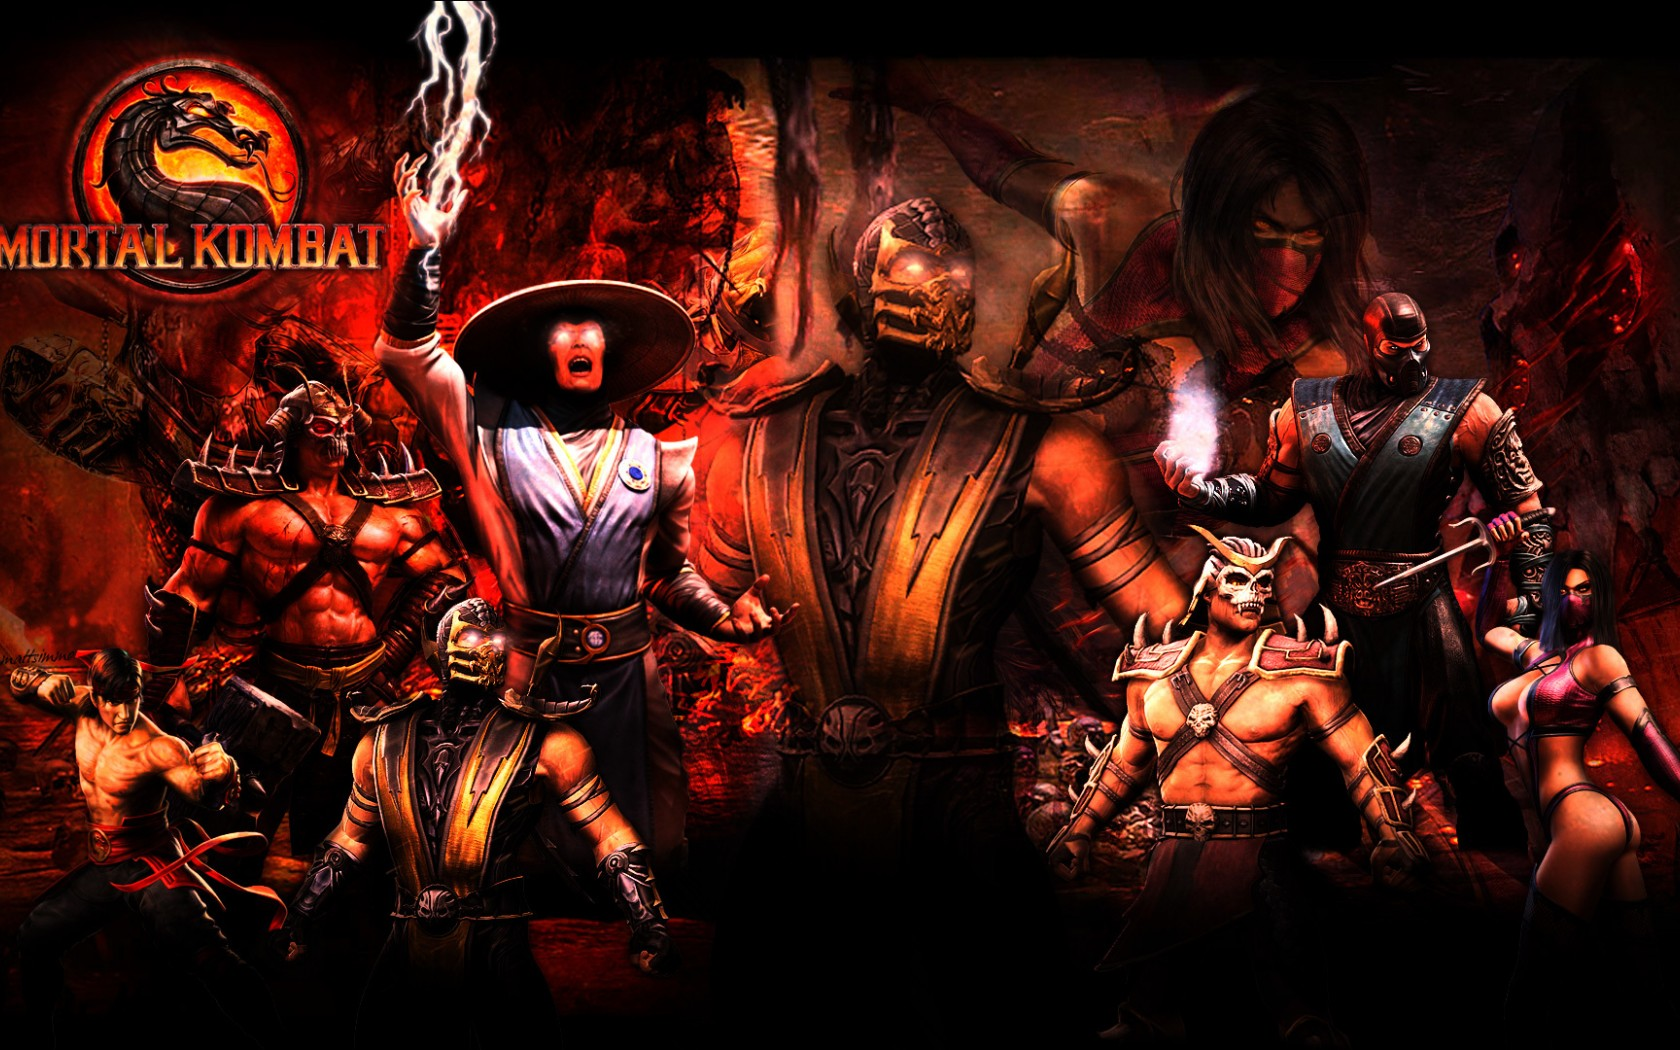 Mortal Kombat wallpaper Fighters 2 » Mortal Kombat games ...